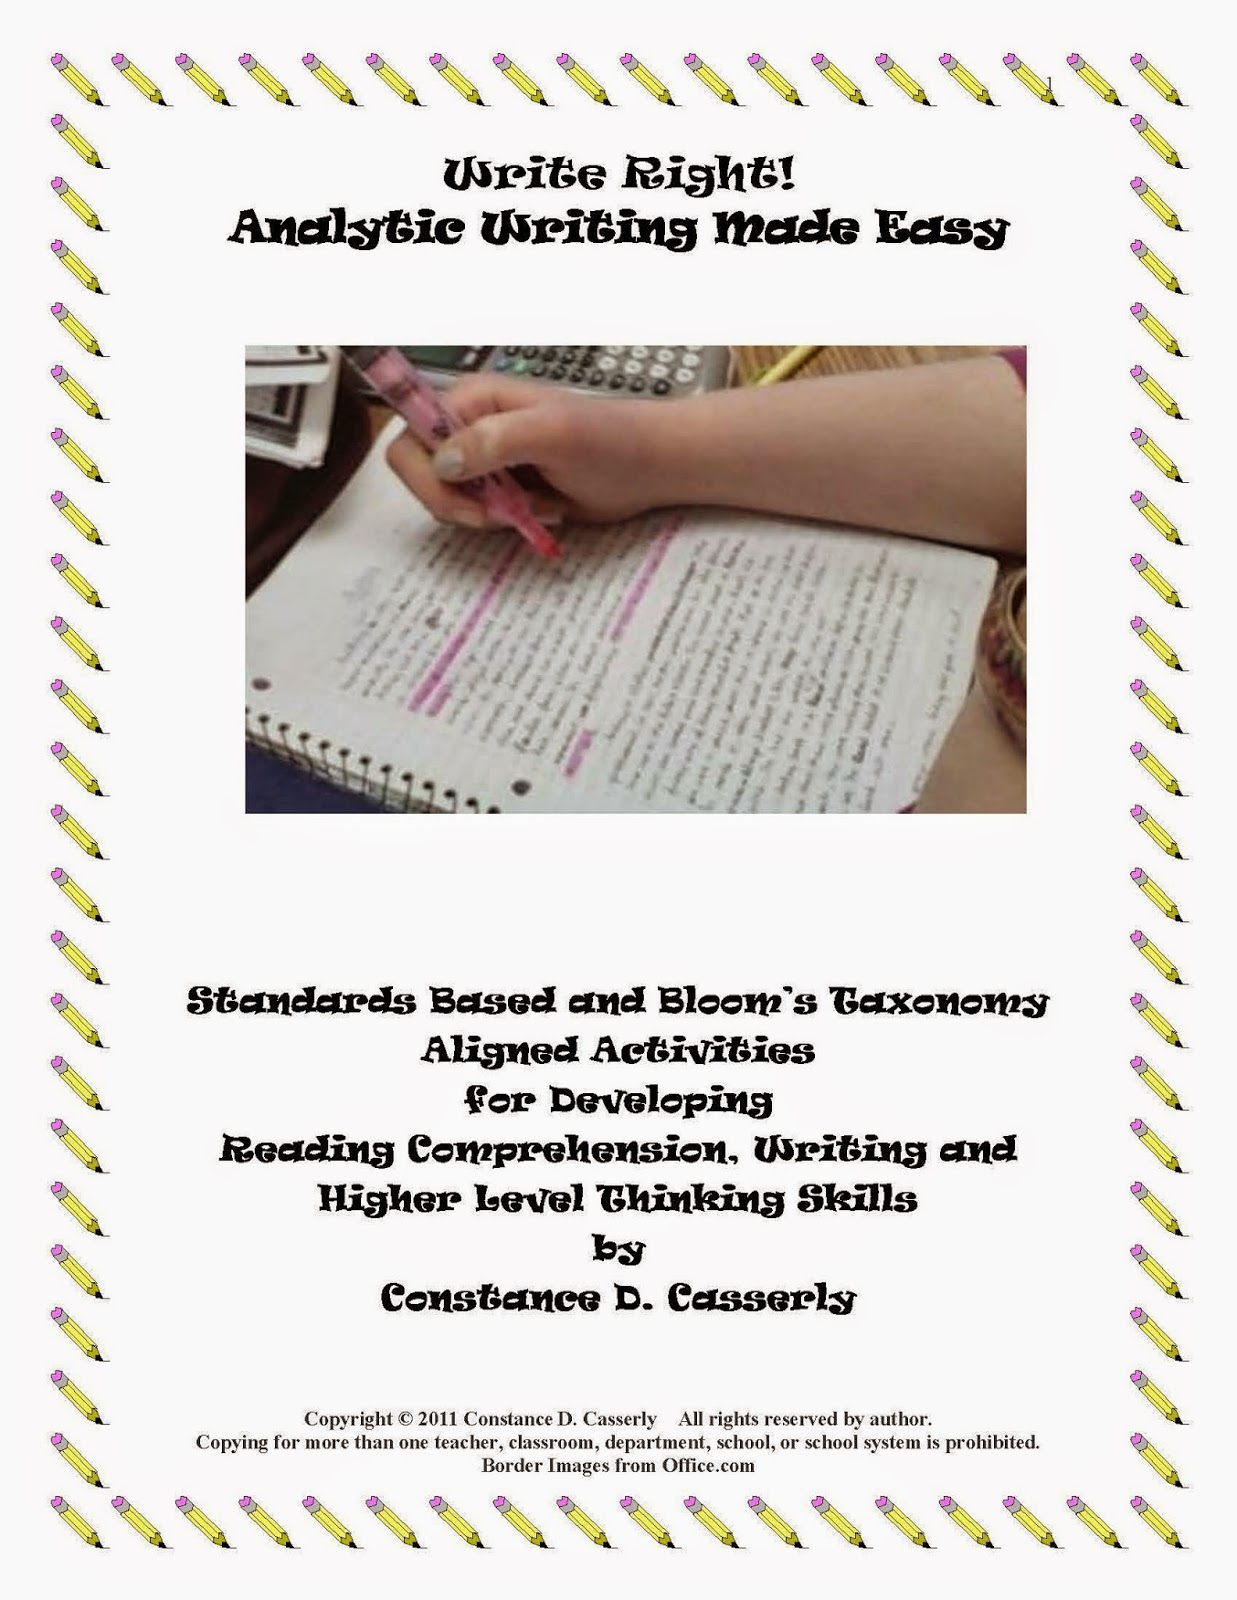 Writing: Write Right! Analytic Writing Made Easy